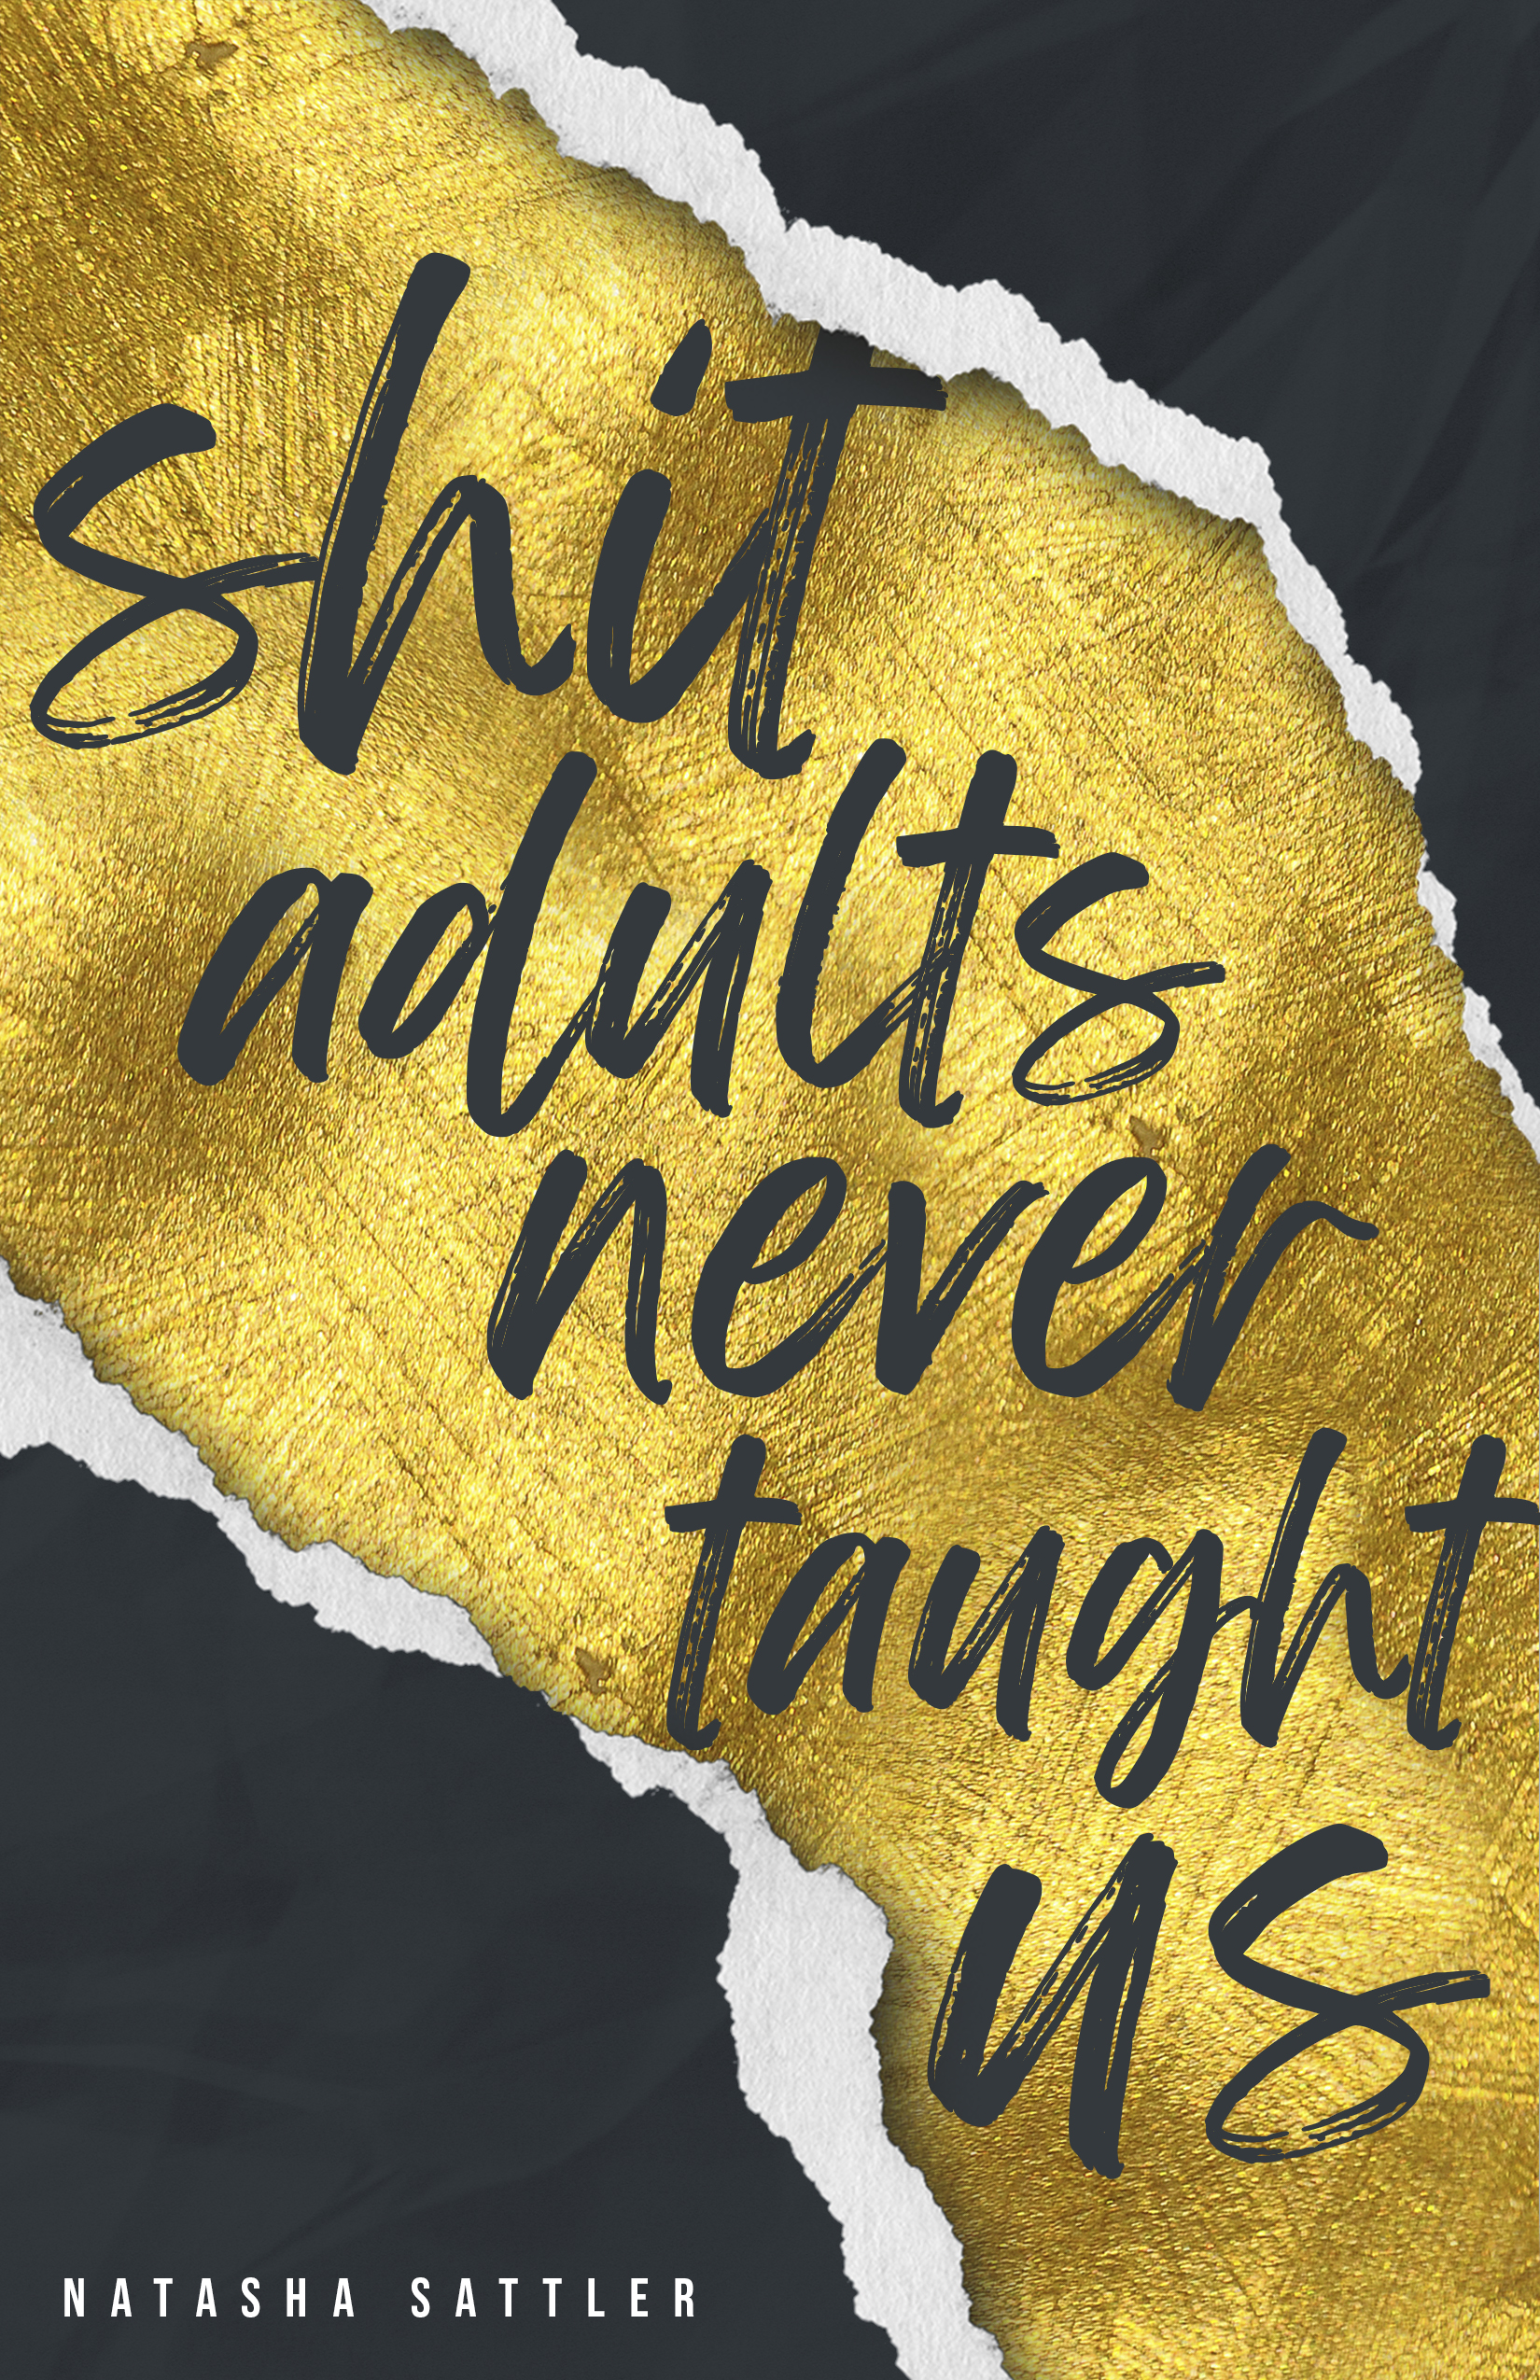 Shit Adults never taught us cover